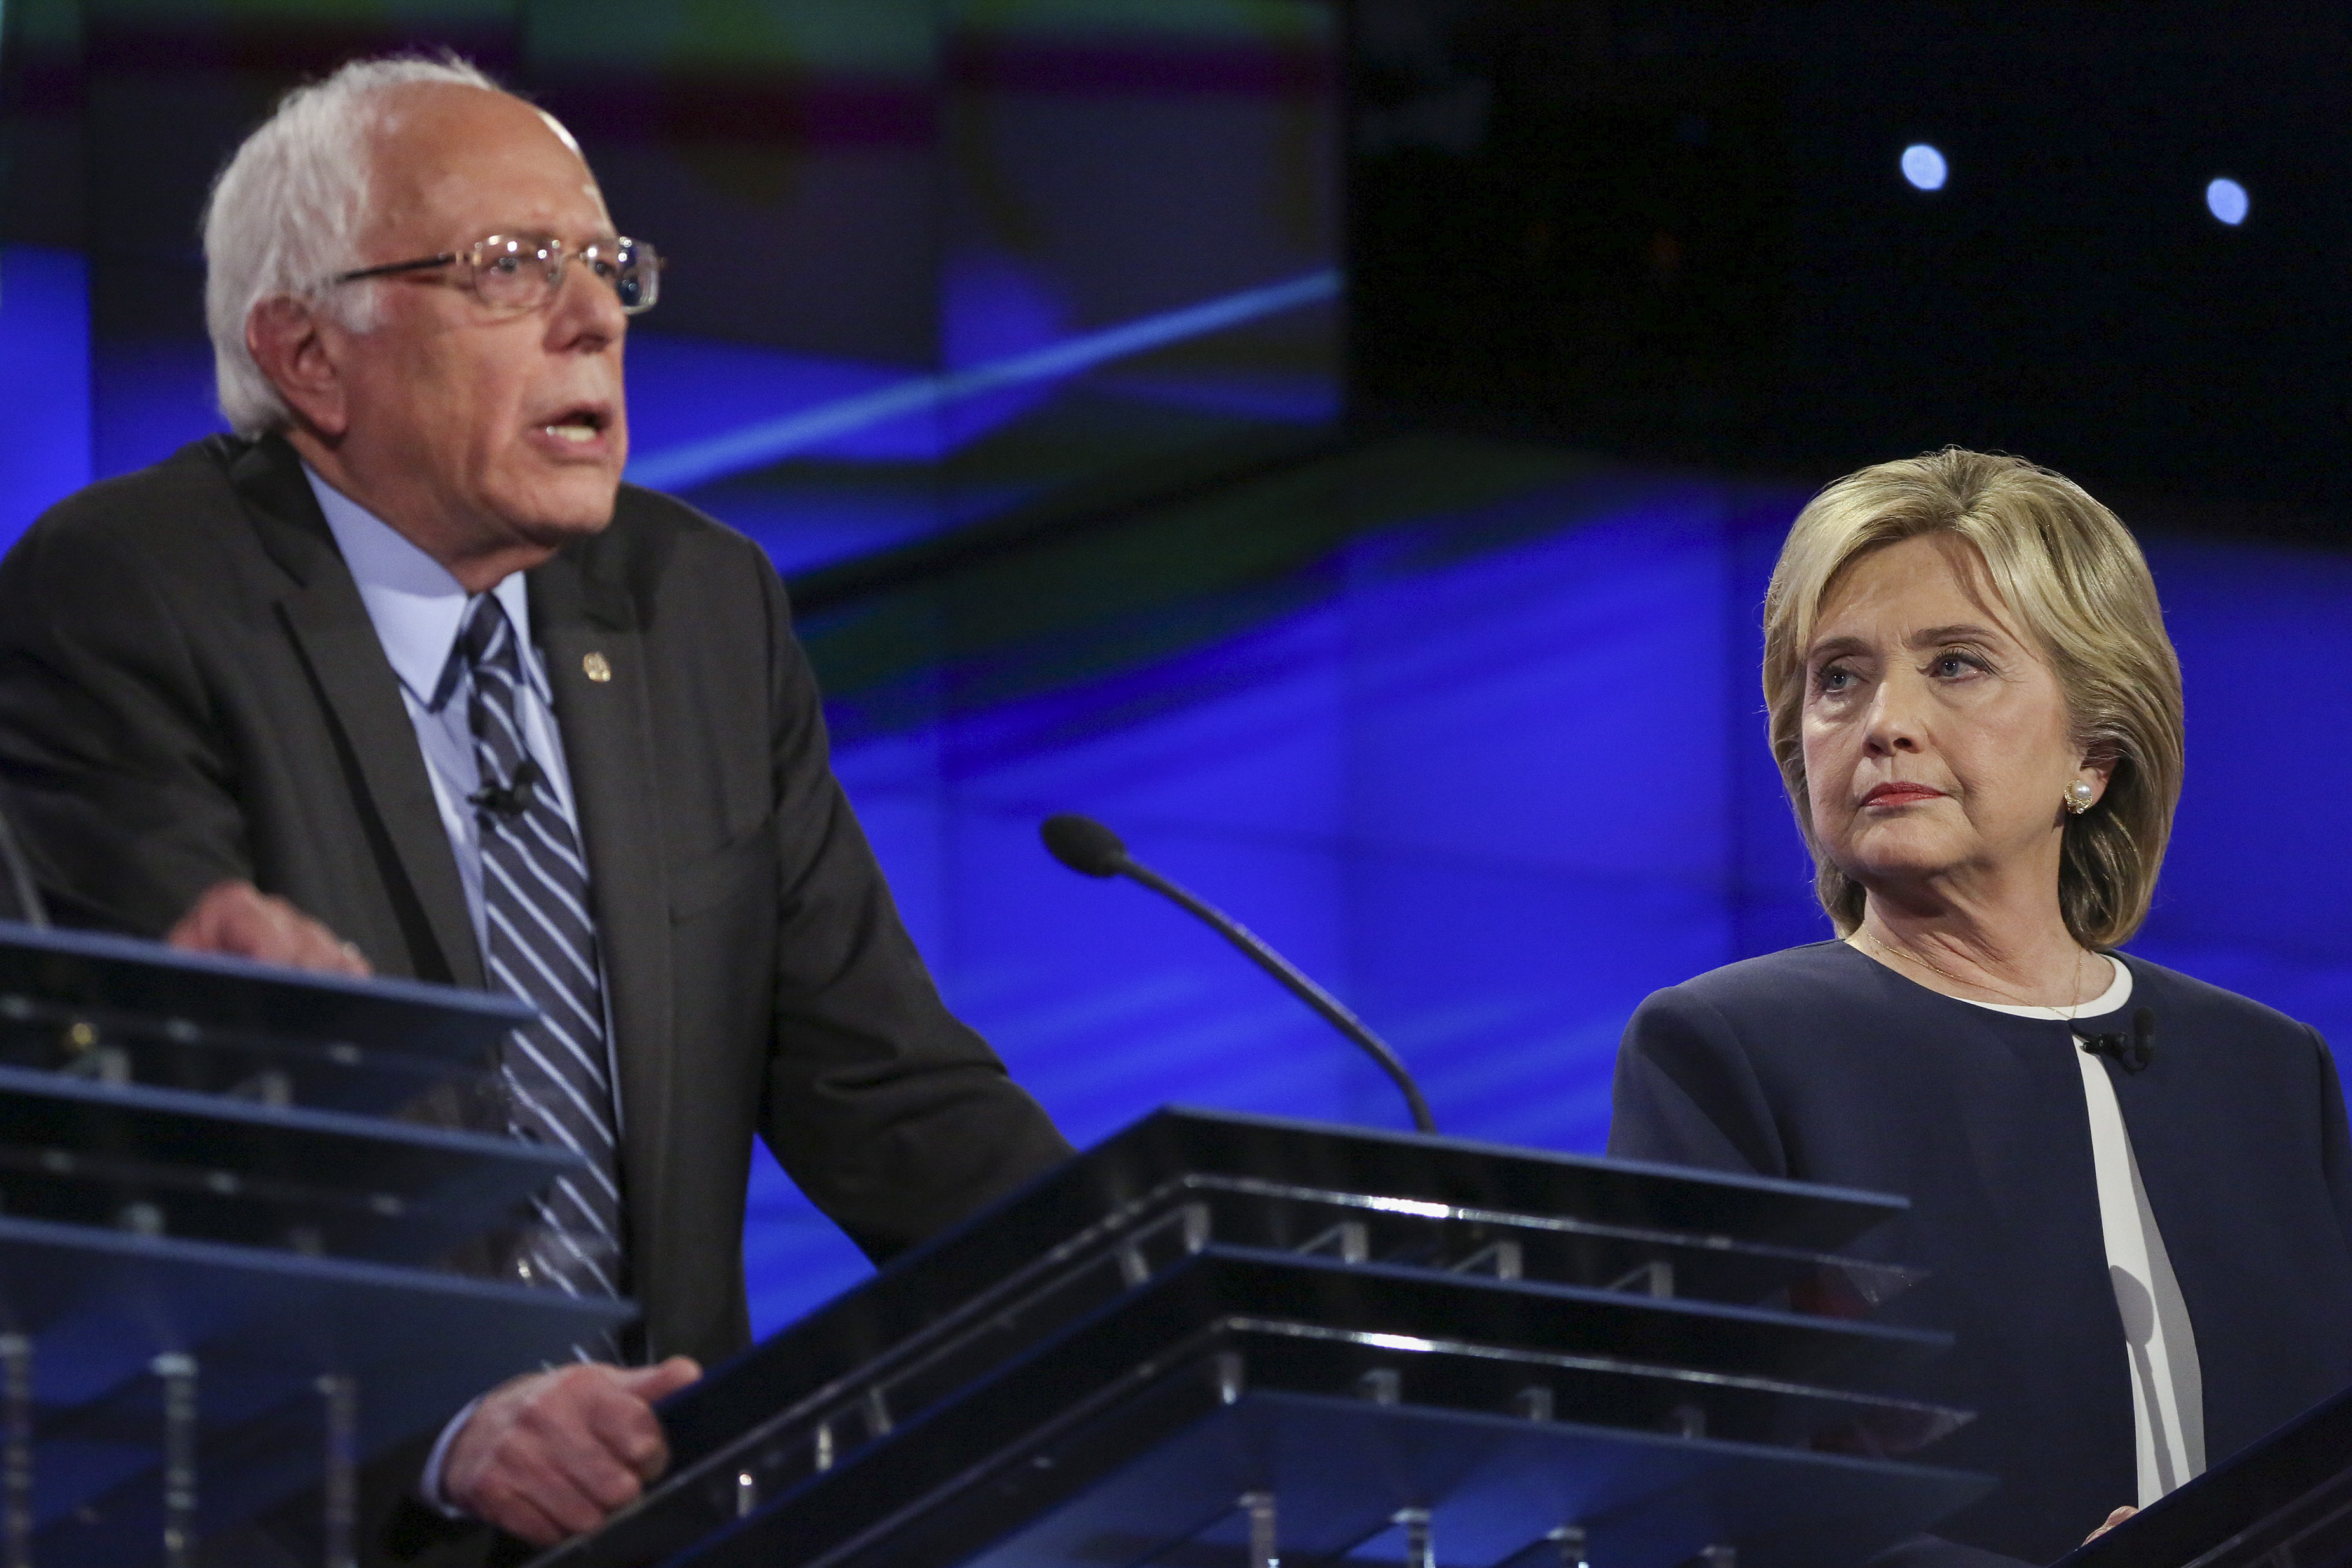 Hillary Clinton and Bernie Sanders participate in the first Democratic presidential debate in Las Vegas, on Oct. 13, 2015.